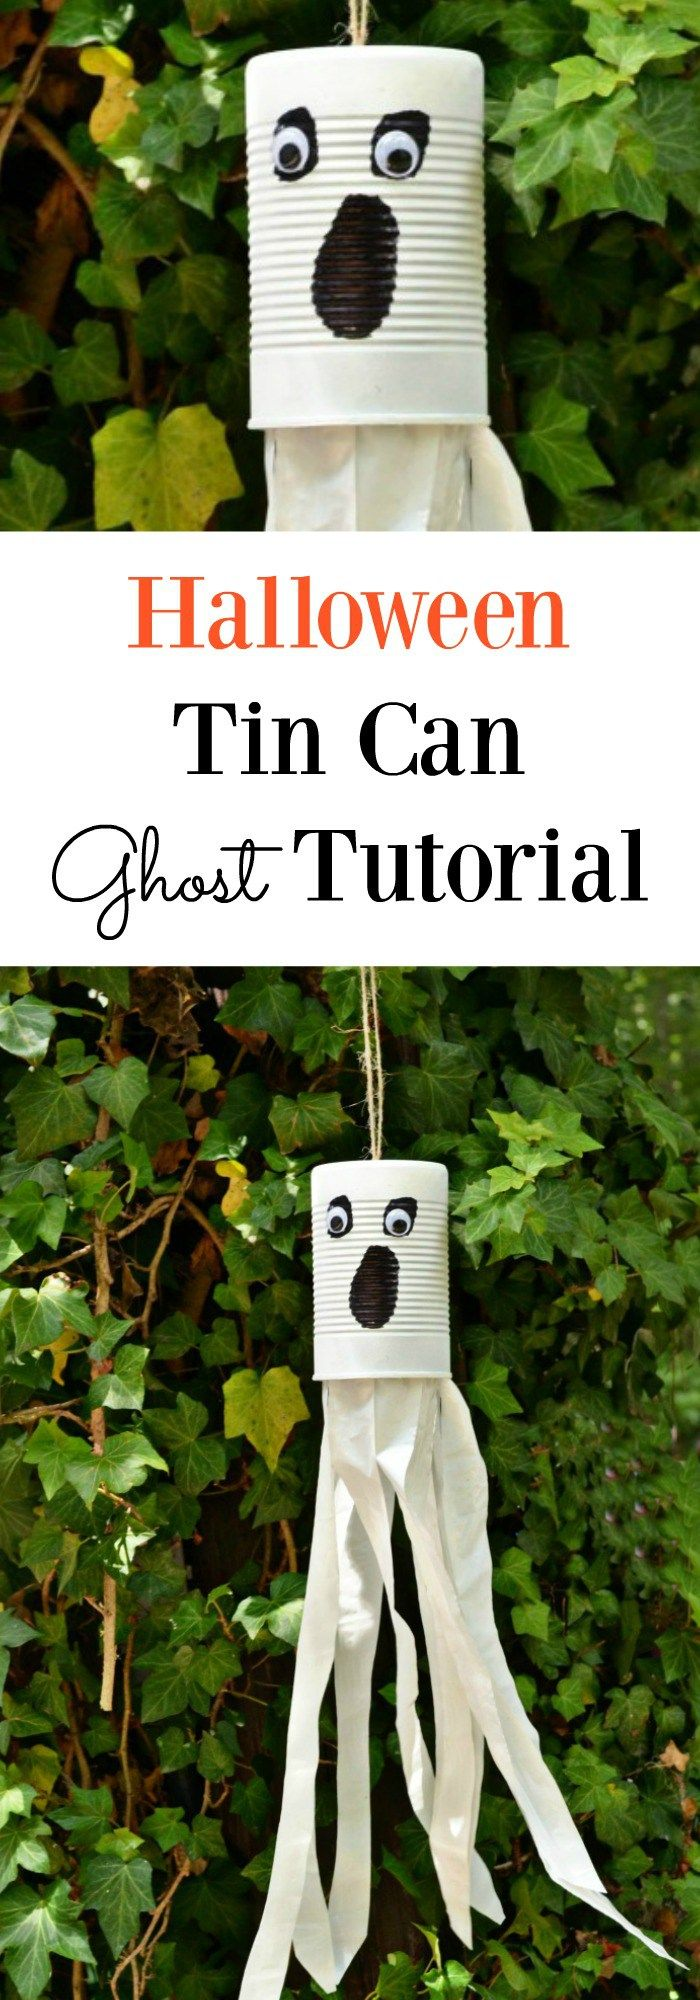 Cute and Simple Halloween Tin Can Ghost Tutorial The perfect - cute homemade halloween decorations